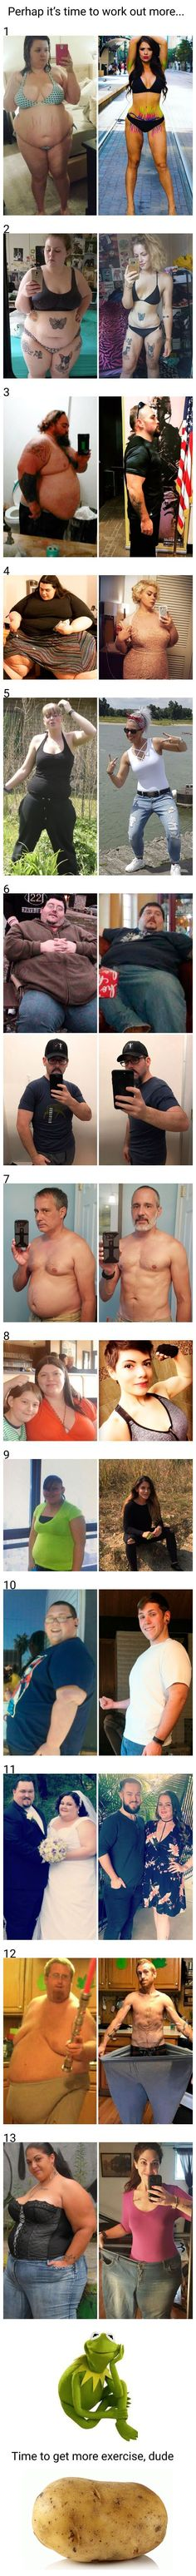 10+ Before And After Photos Of People With Dramatic Weight Loss #loseweightbeforeandafter #BellyFatTraining